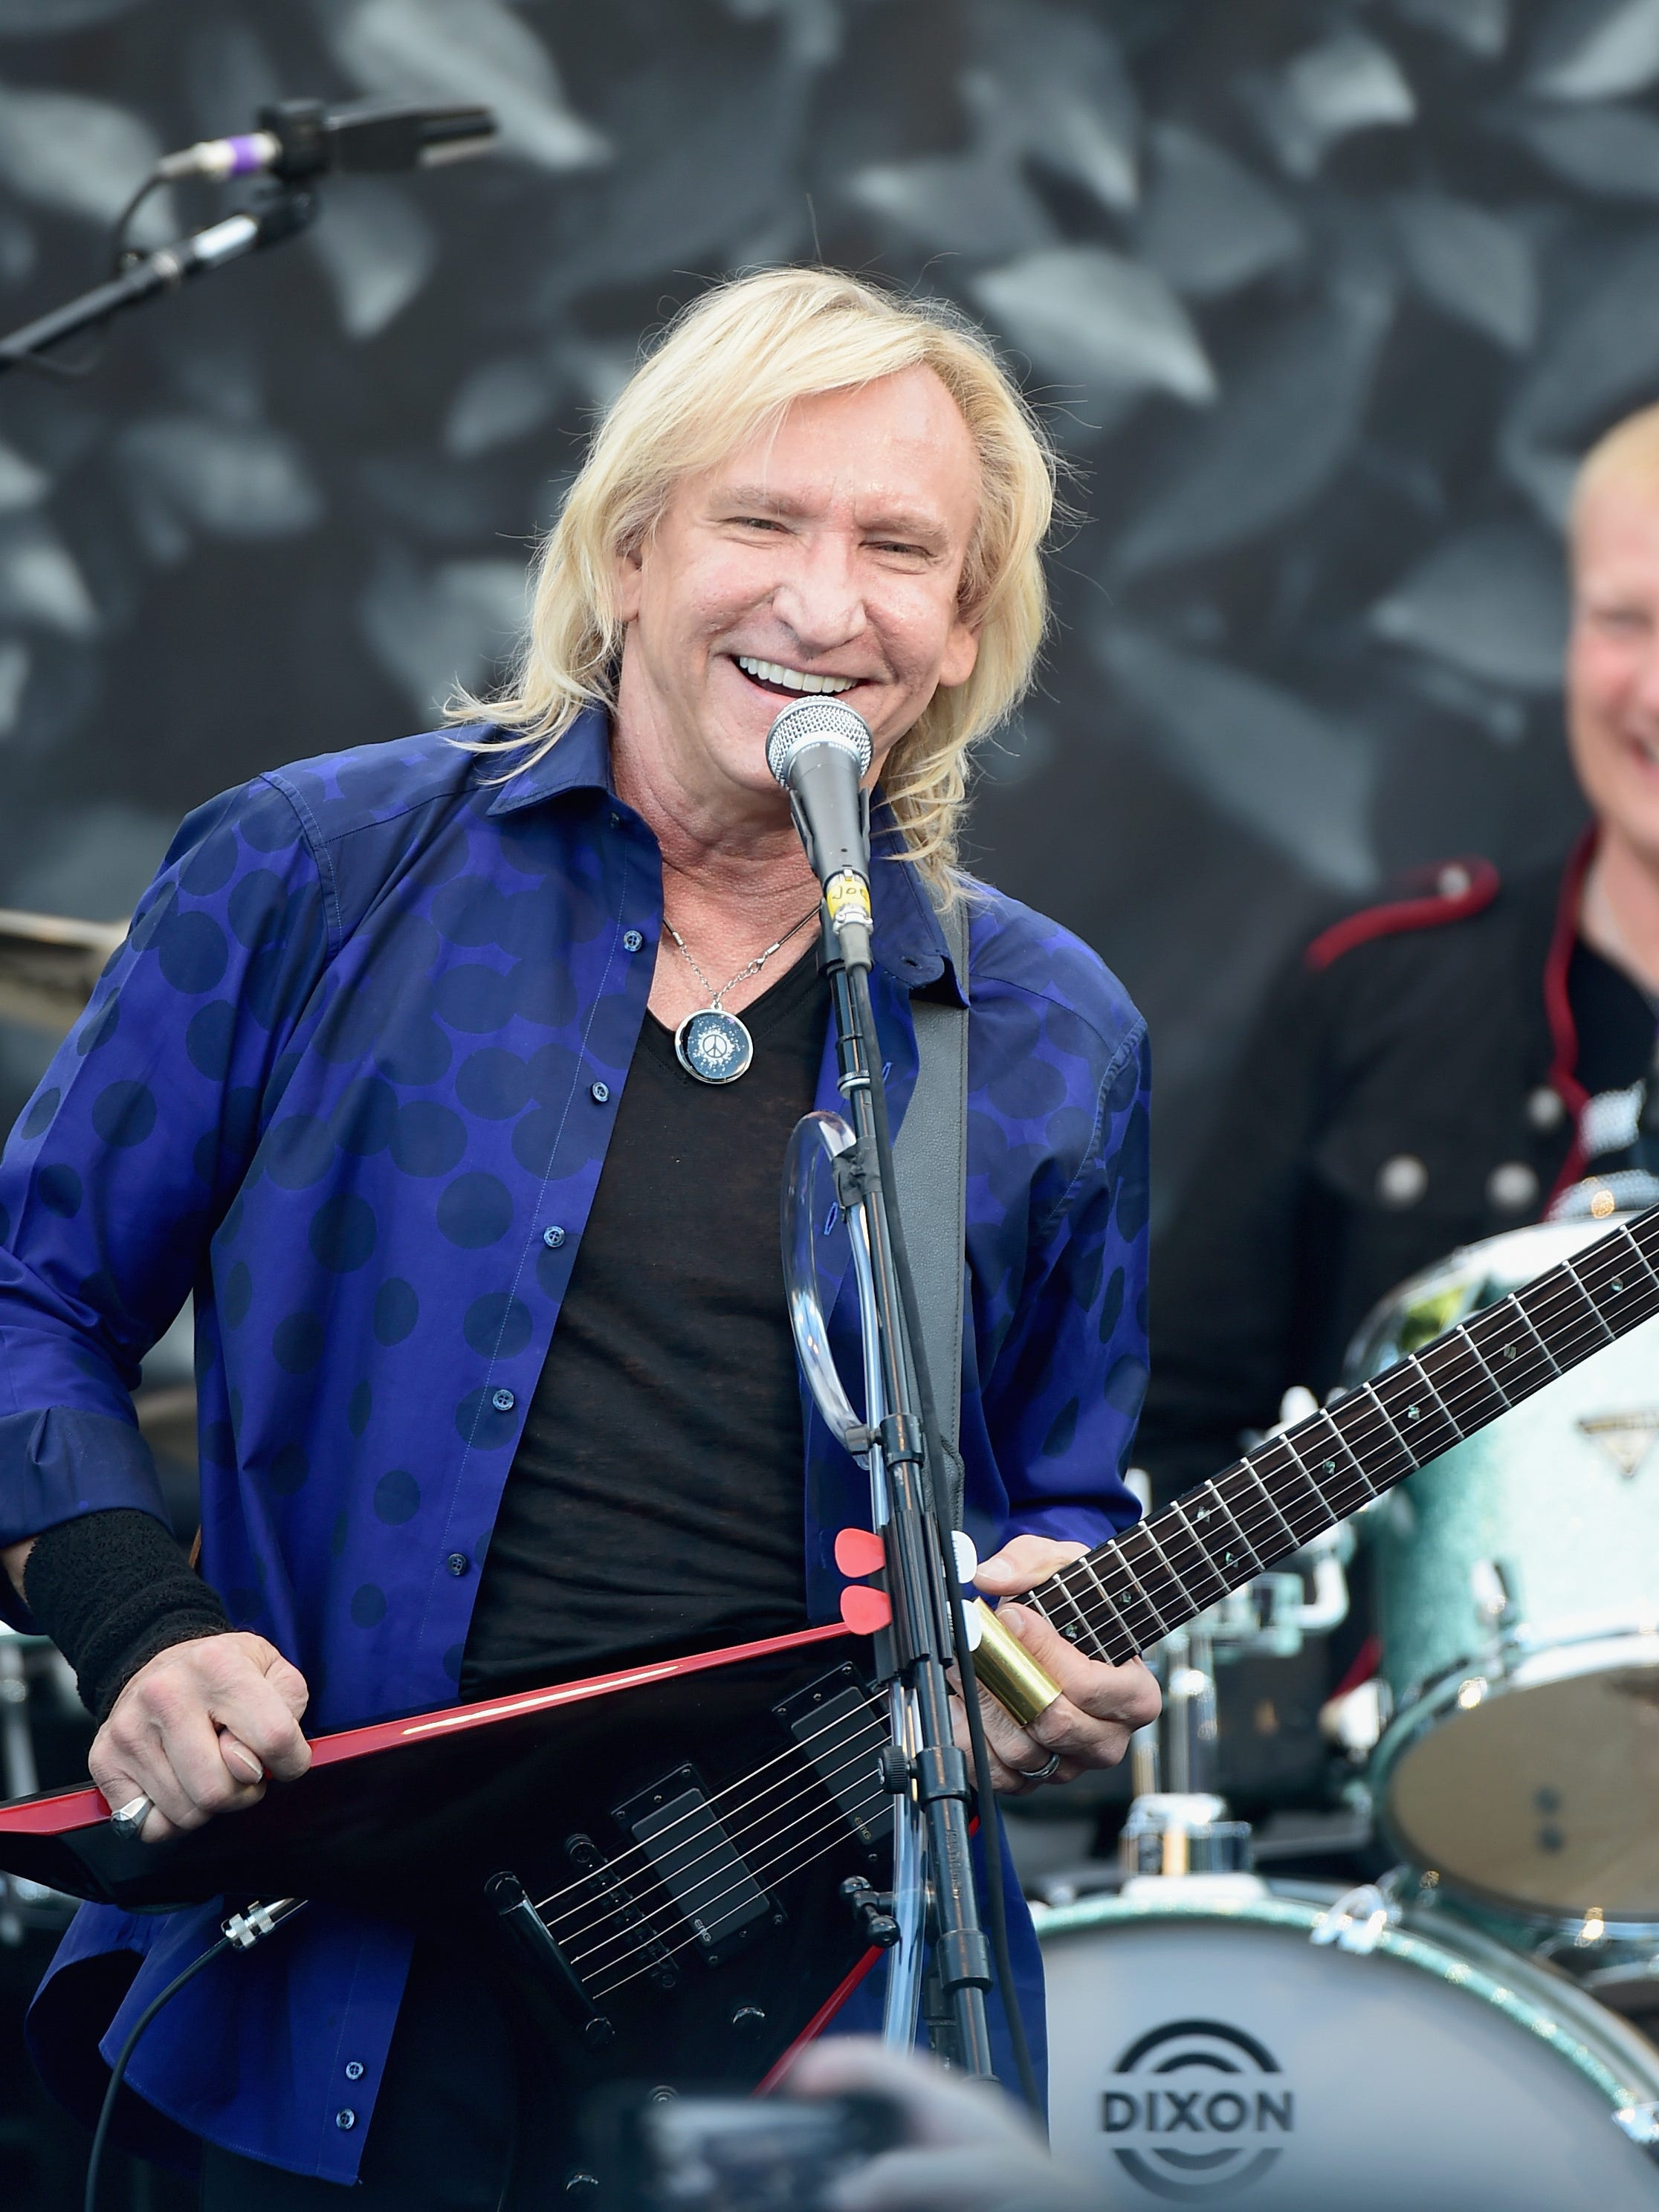 Joe Walsh Comes Home For New Jersey Shows Walsh ran unopposed in the republican primary on march 20, 2012. joe walsh comes home for new jersey shows